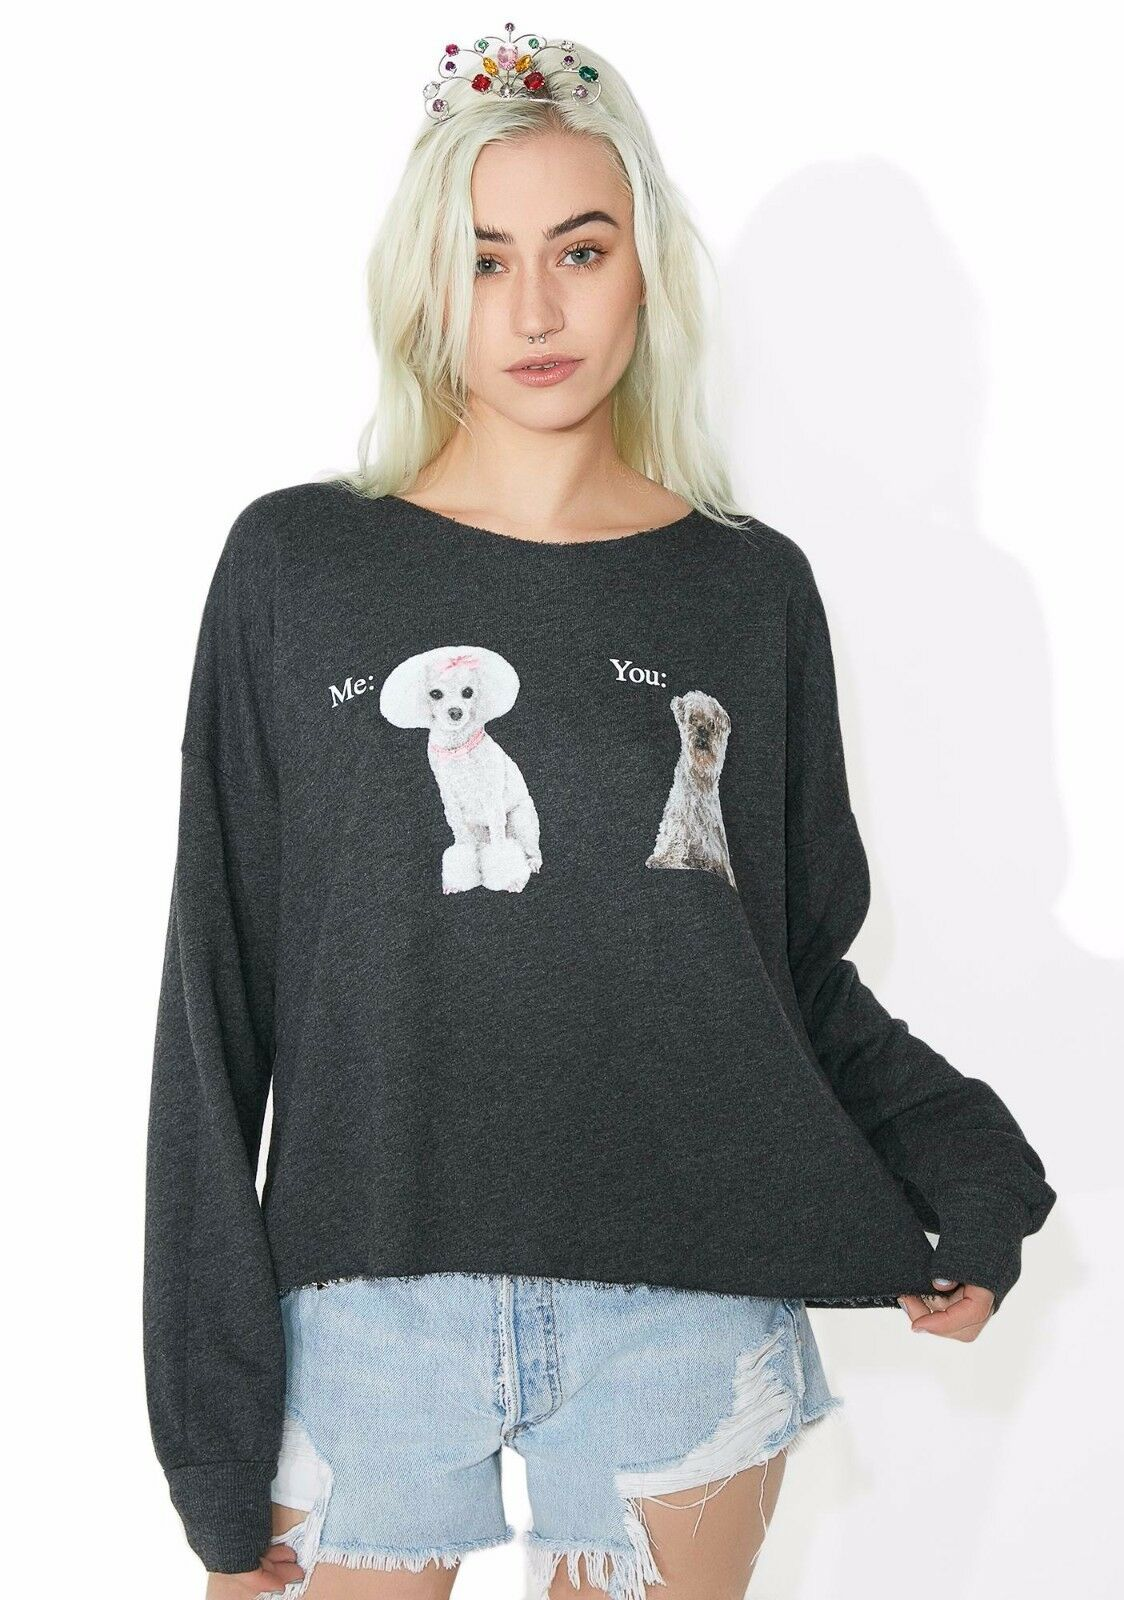 Neuf Wildfox couture me VS vous 5AM Sweat-shirt Pull-over Sweater Top